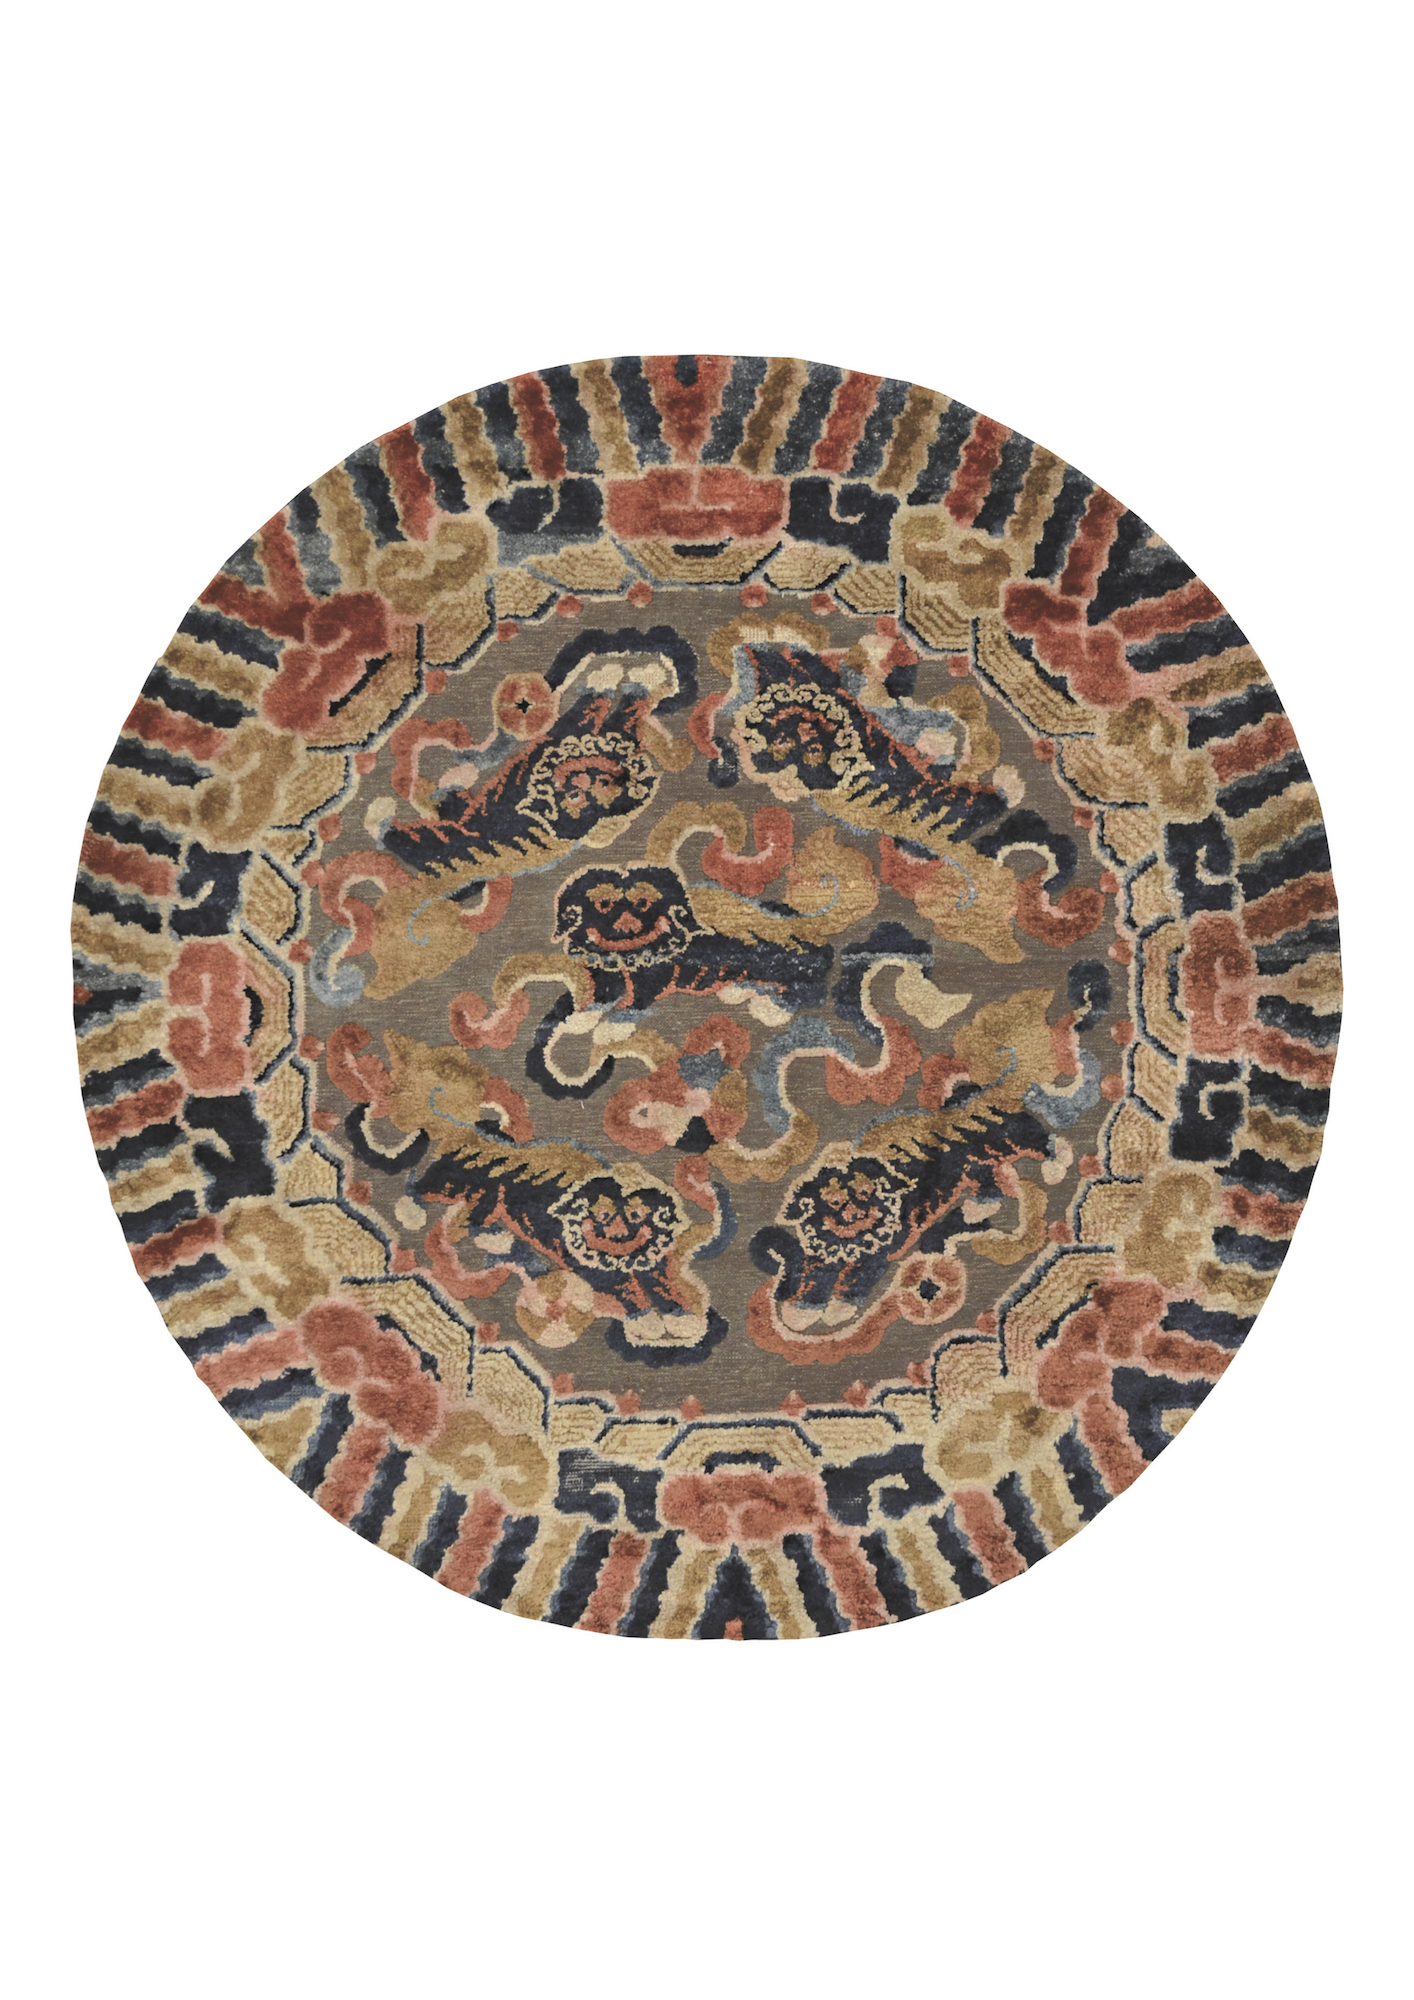 imperial carpet Five Lions at MGM Awakening Lion Exhibition 2021